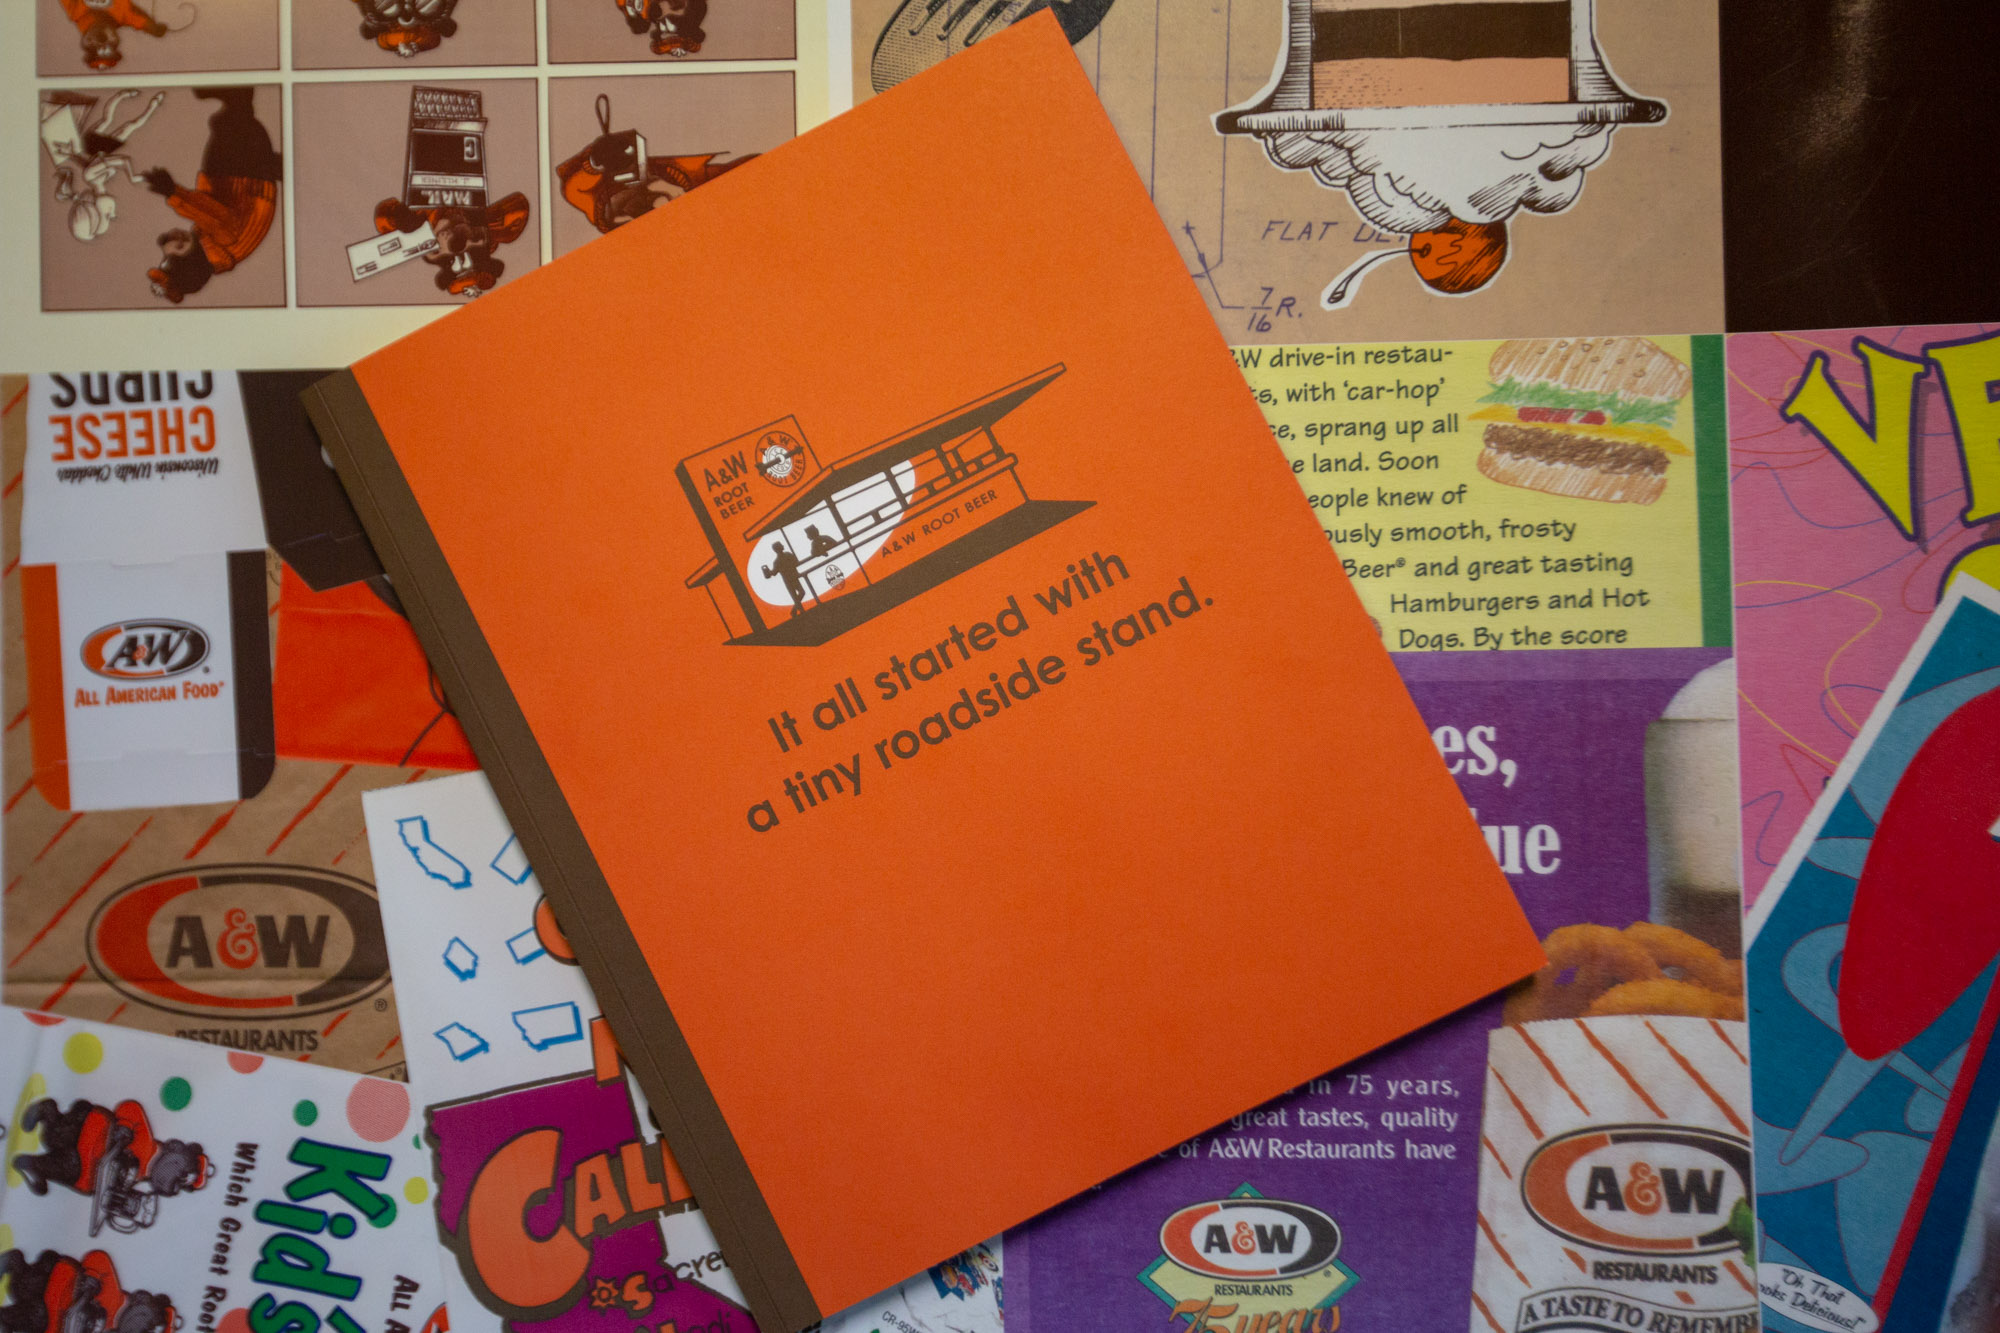 Overhead photo of A&W 100th Anniversary Book on collage background. Book is orange with illustration of A&W Root Beer Stand on the cover with text 'It all started with a roadside stand' below in brown.